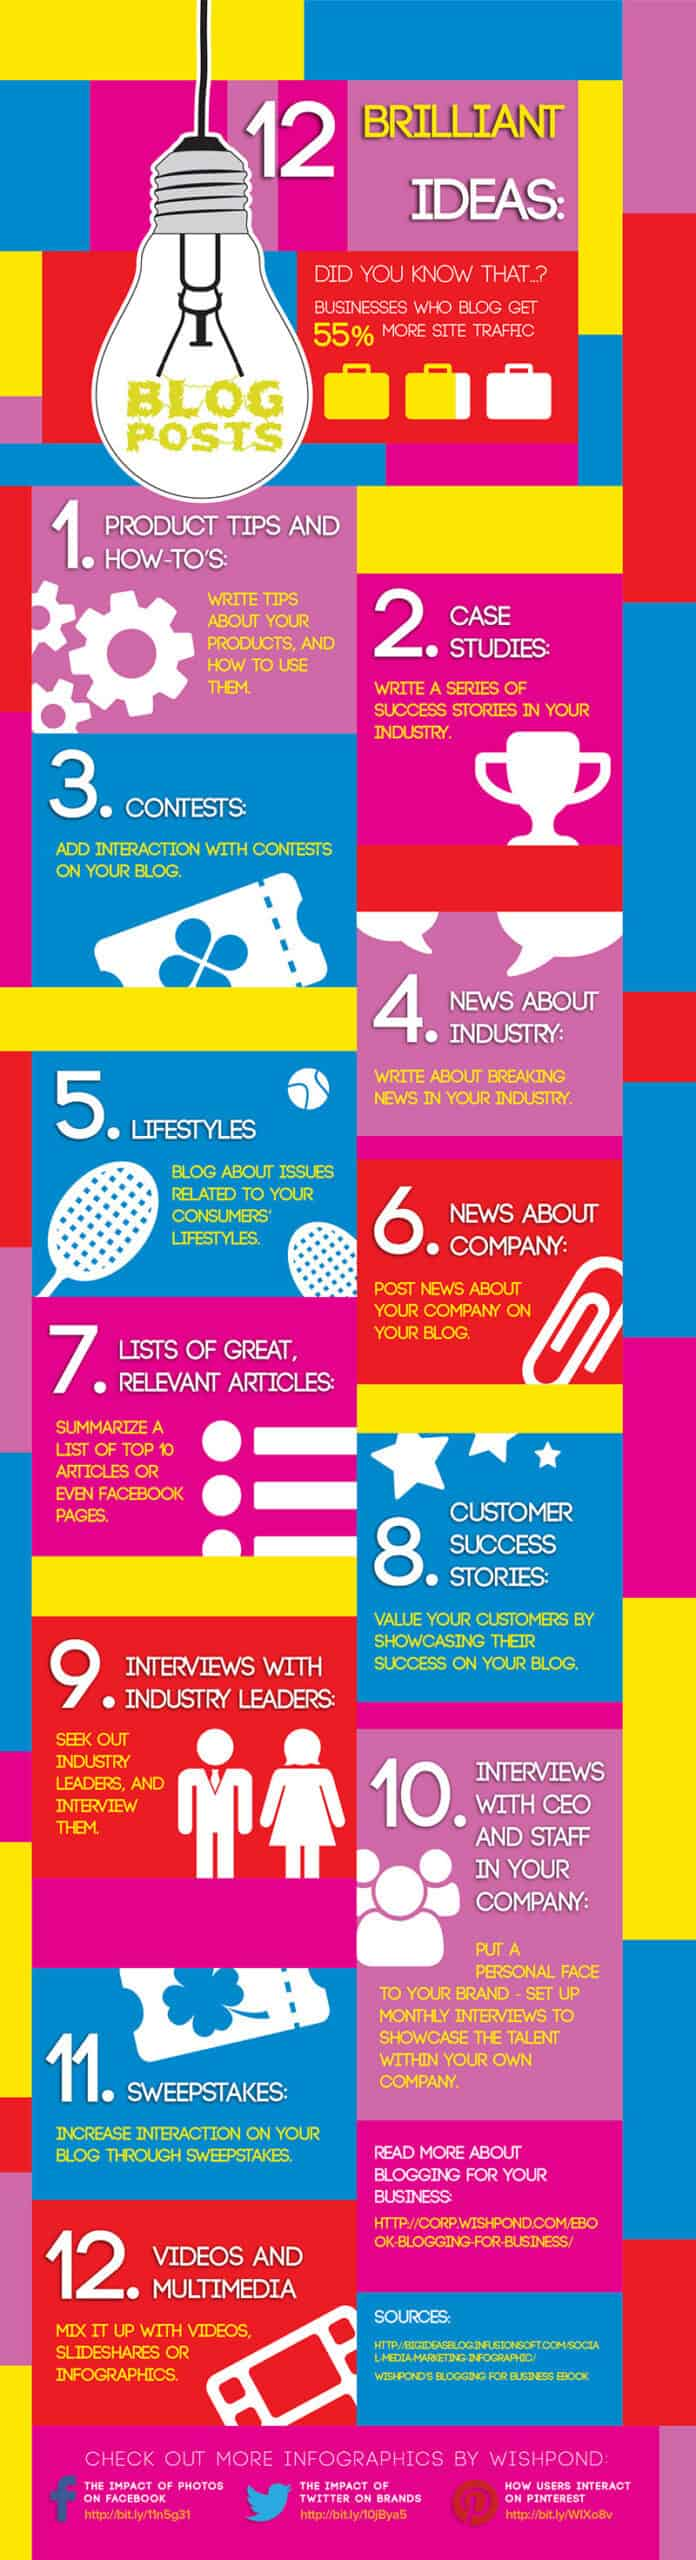 Check out these additional 12 amazing ideas for your business blog content, in this great infographic!